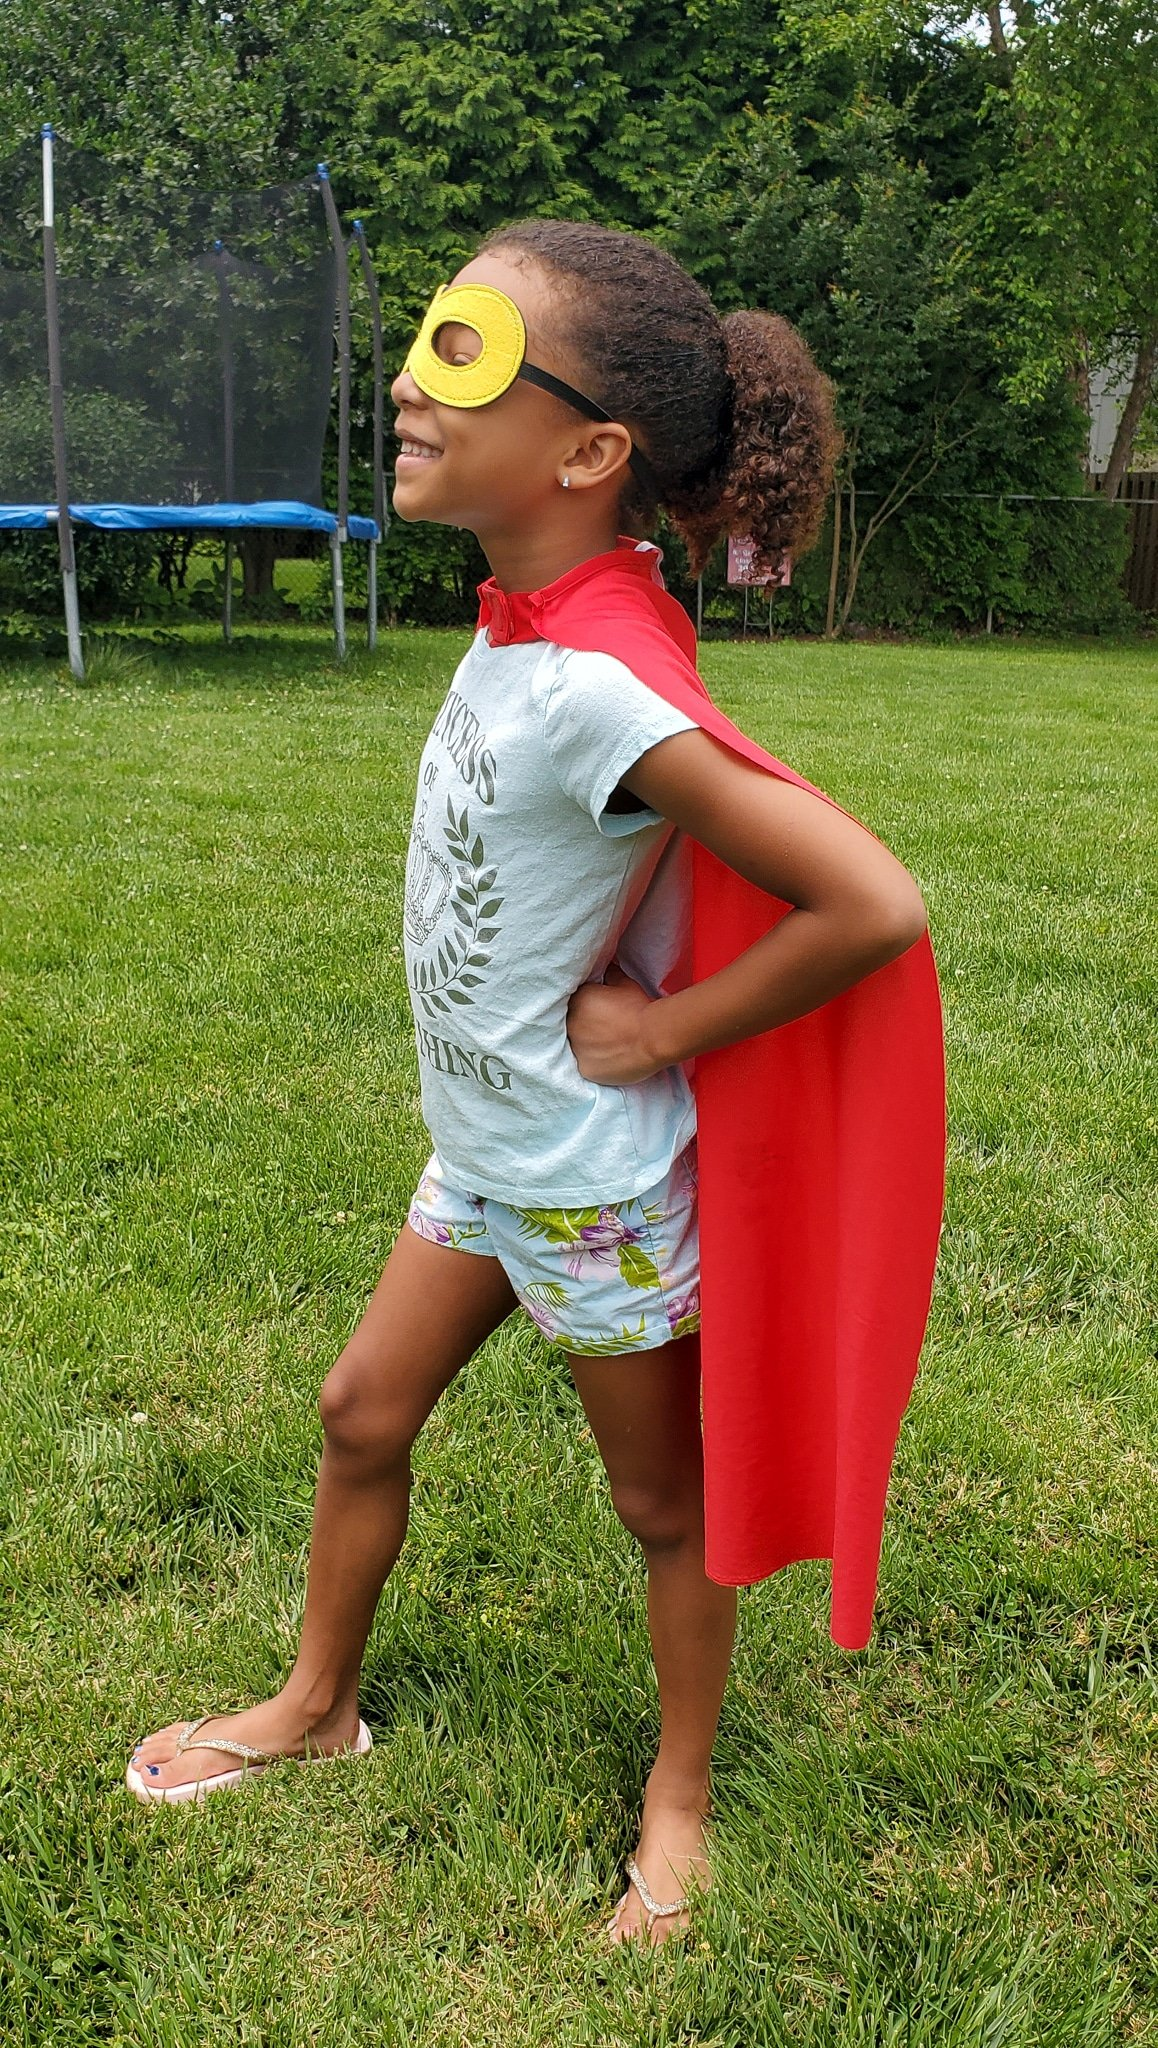 Virtual Super Hero Training Pose. Join us as we adventure through 8 weeks of Virtual Camp Warner Bros. Each week will feature a new fun family friendly activity and a Warner Bros. Show or Movie. This week featured a Virtual Super Hero Training.